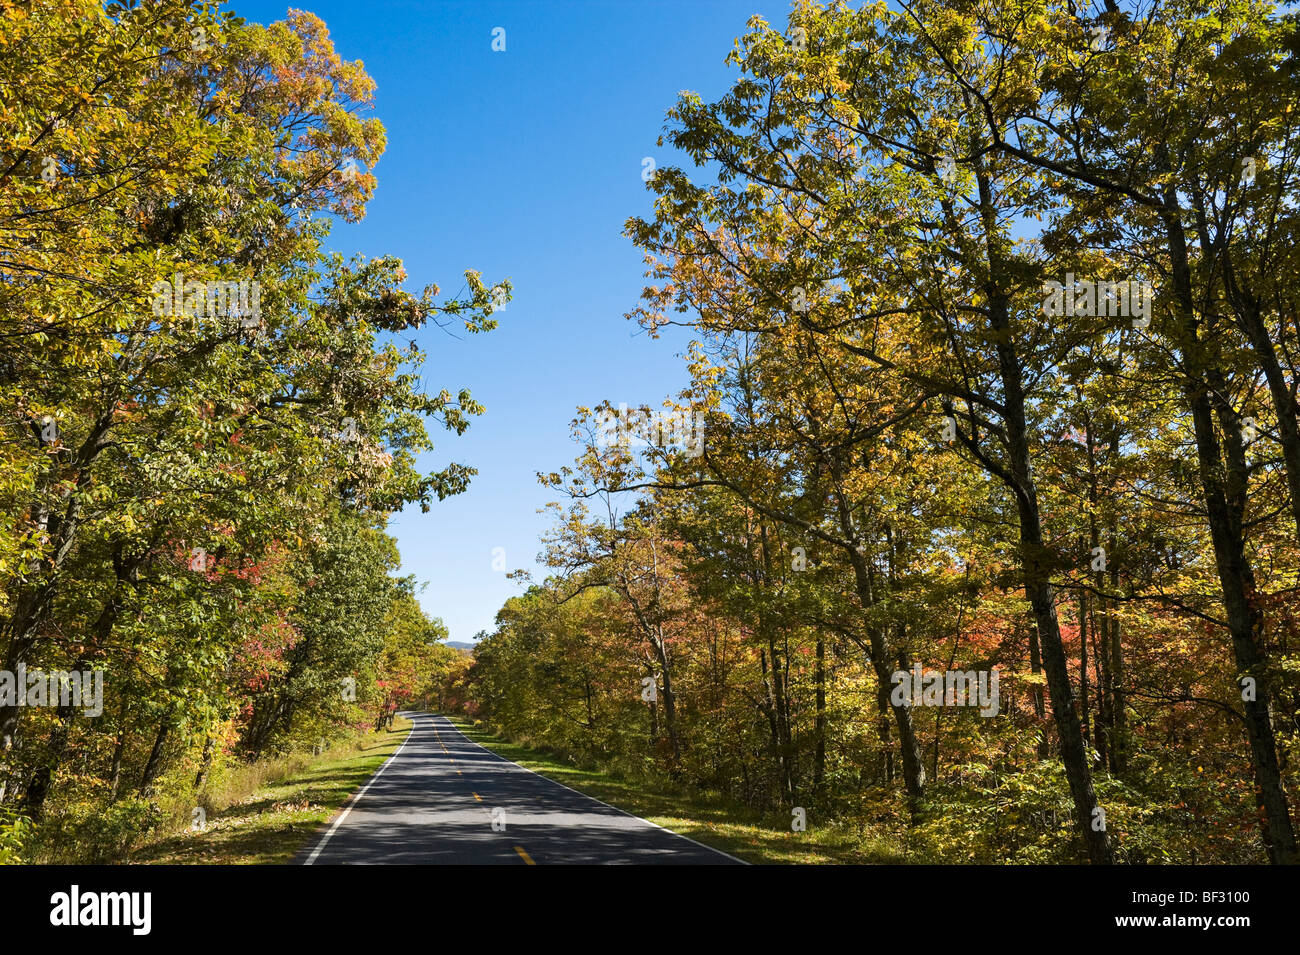 Fall colours on Skyline Drive, Shenandoah National Park, Blue Ridge Mountains, Virginia, USA - Stock Image